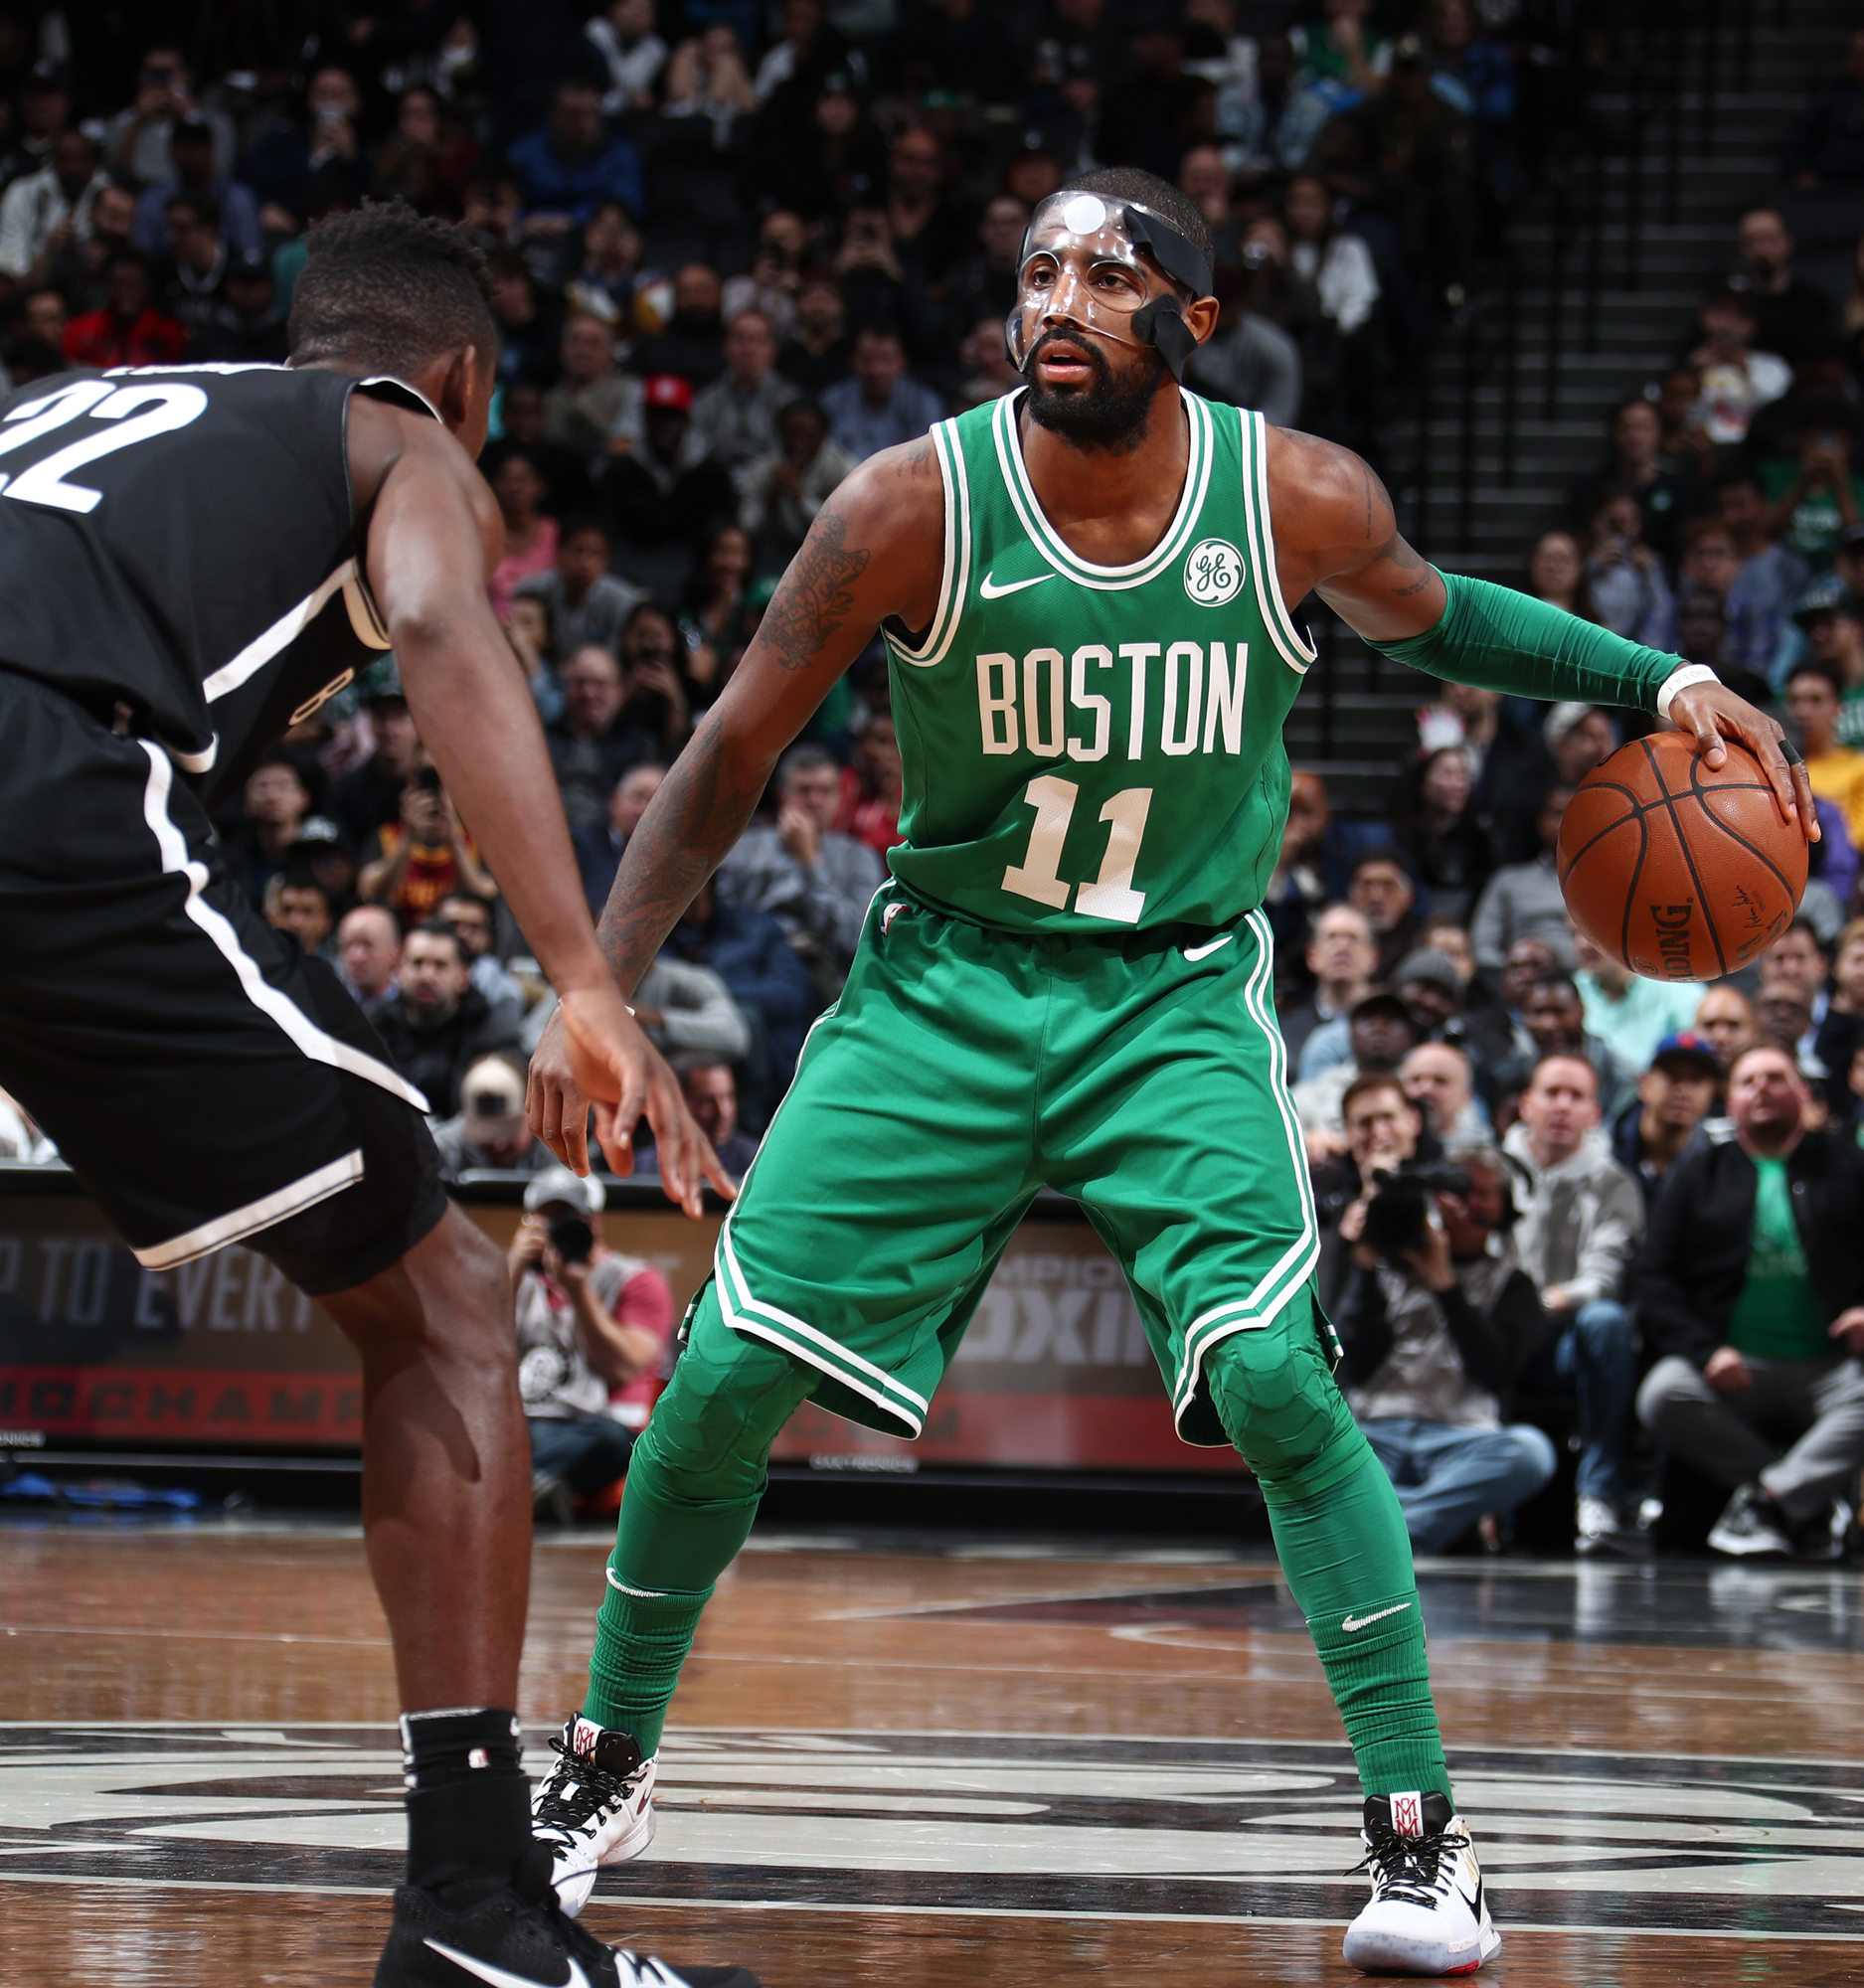 0a5b5699f Black mask Kyrie Irving vs. clear mask Kyrie Irving — who wins